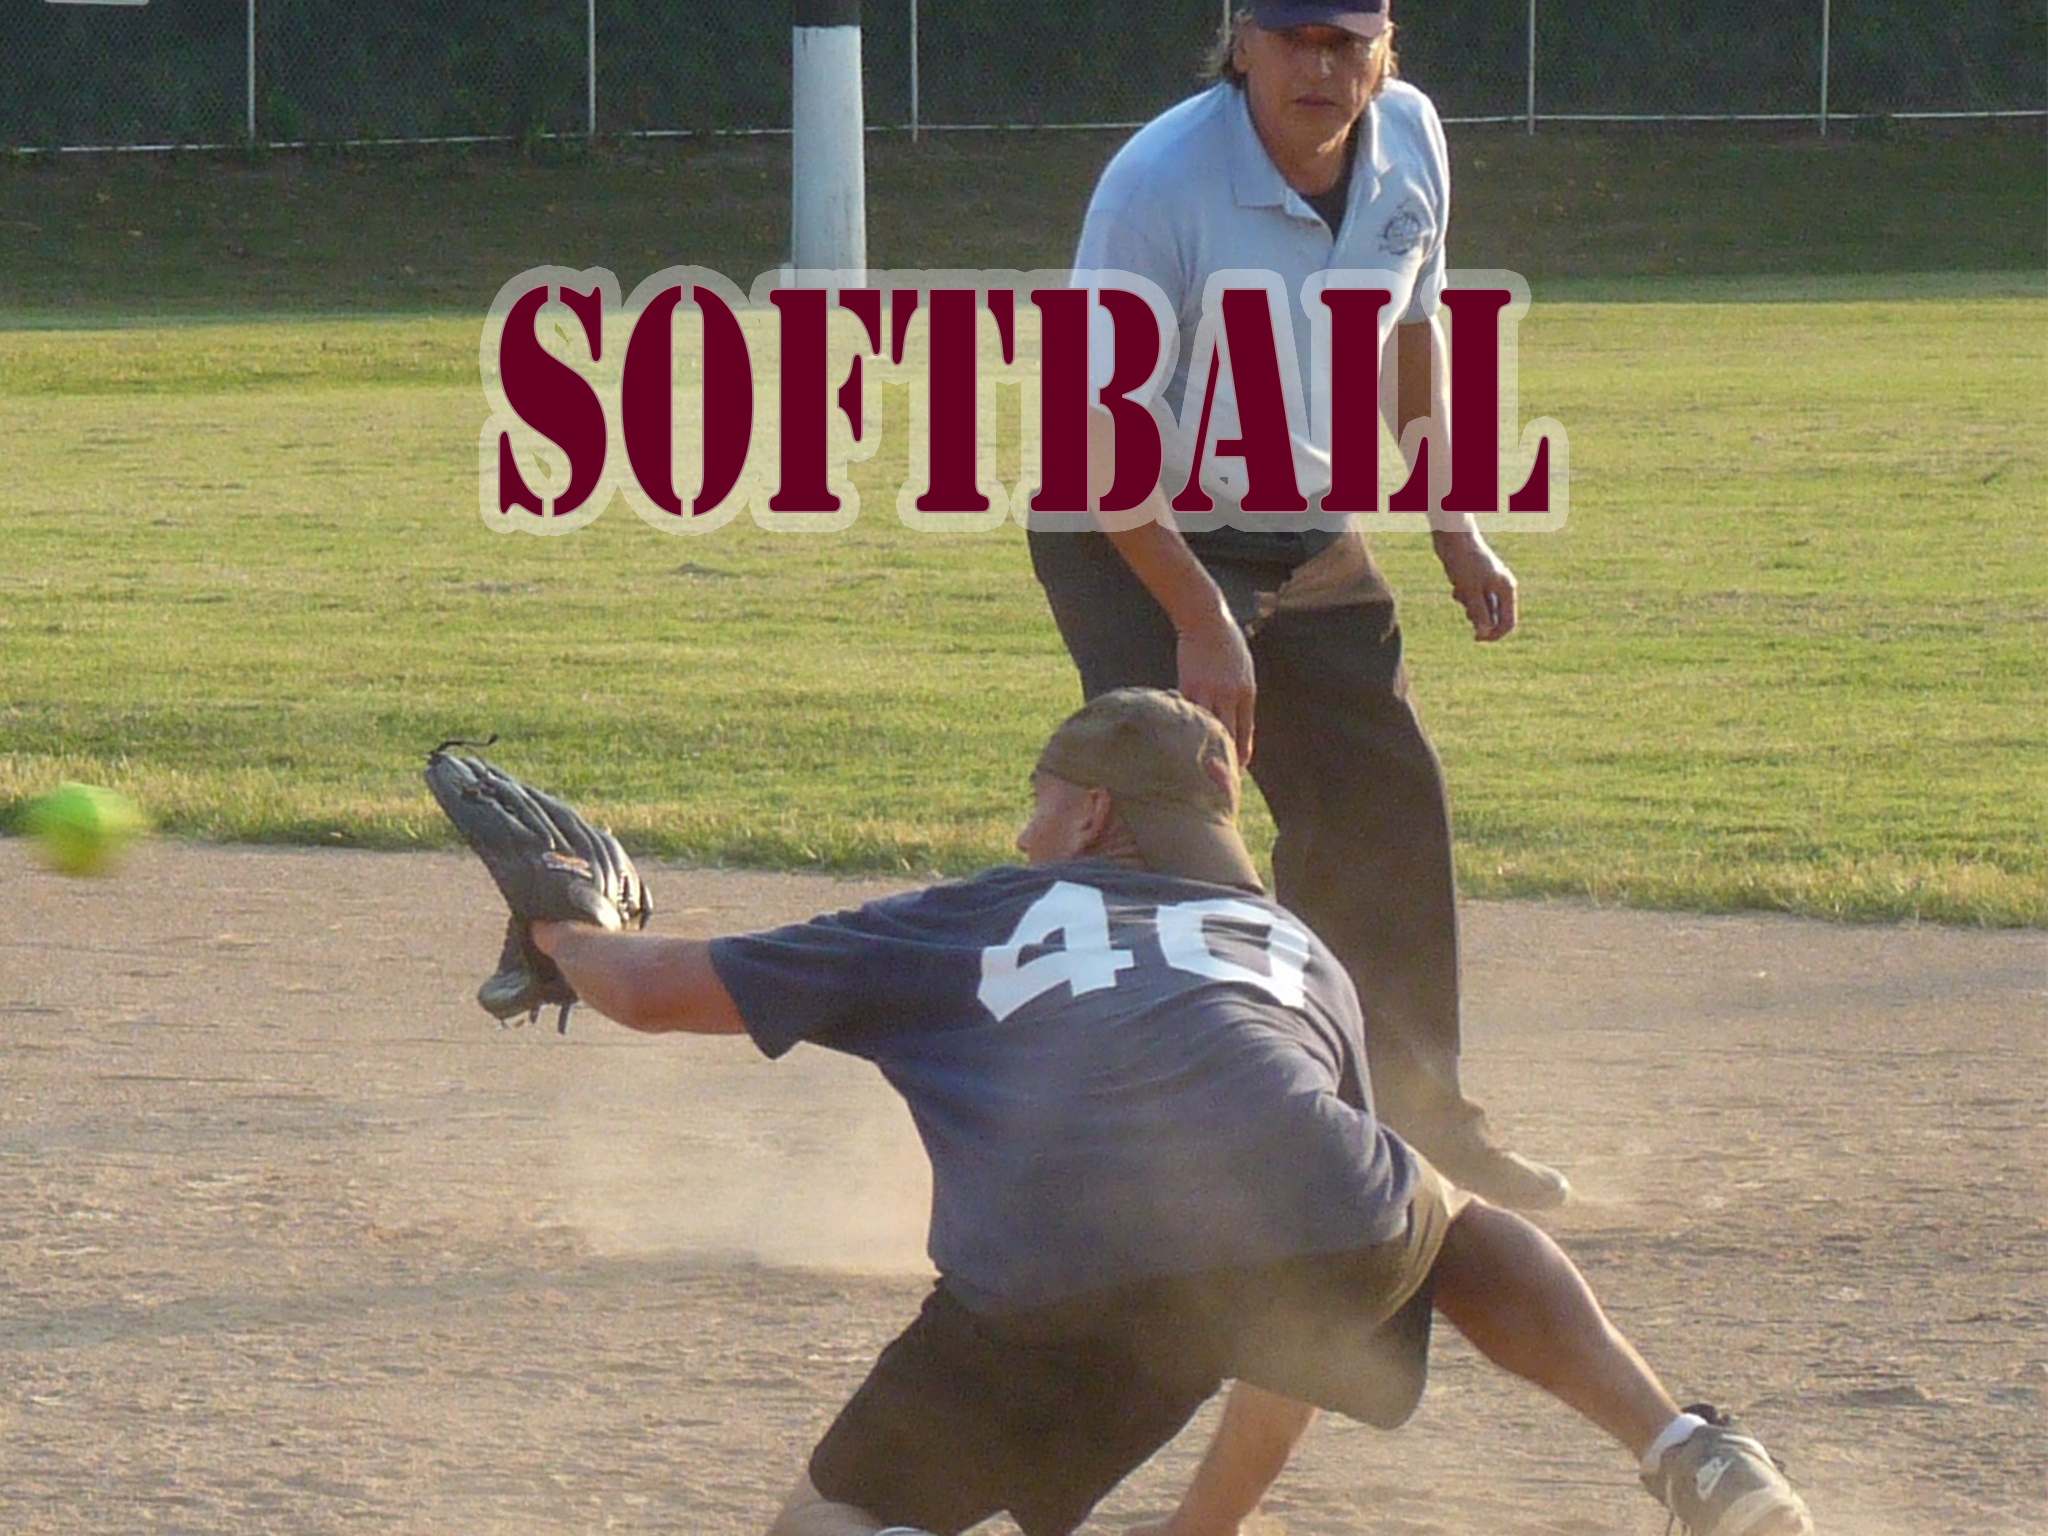 SoftballGraphic